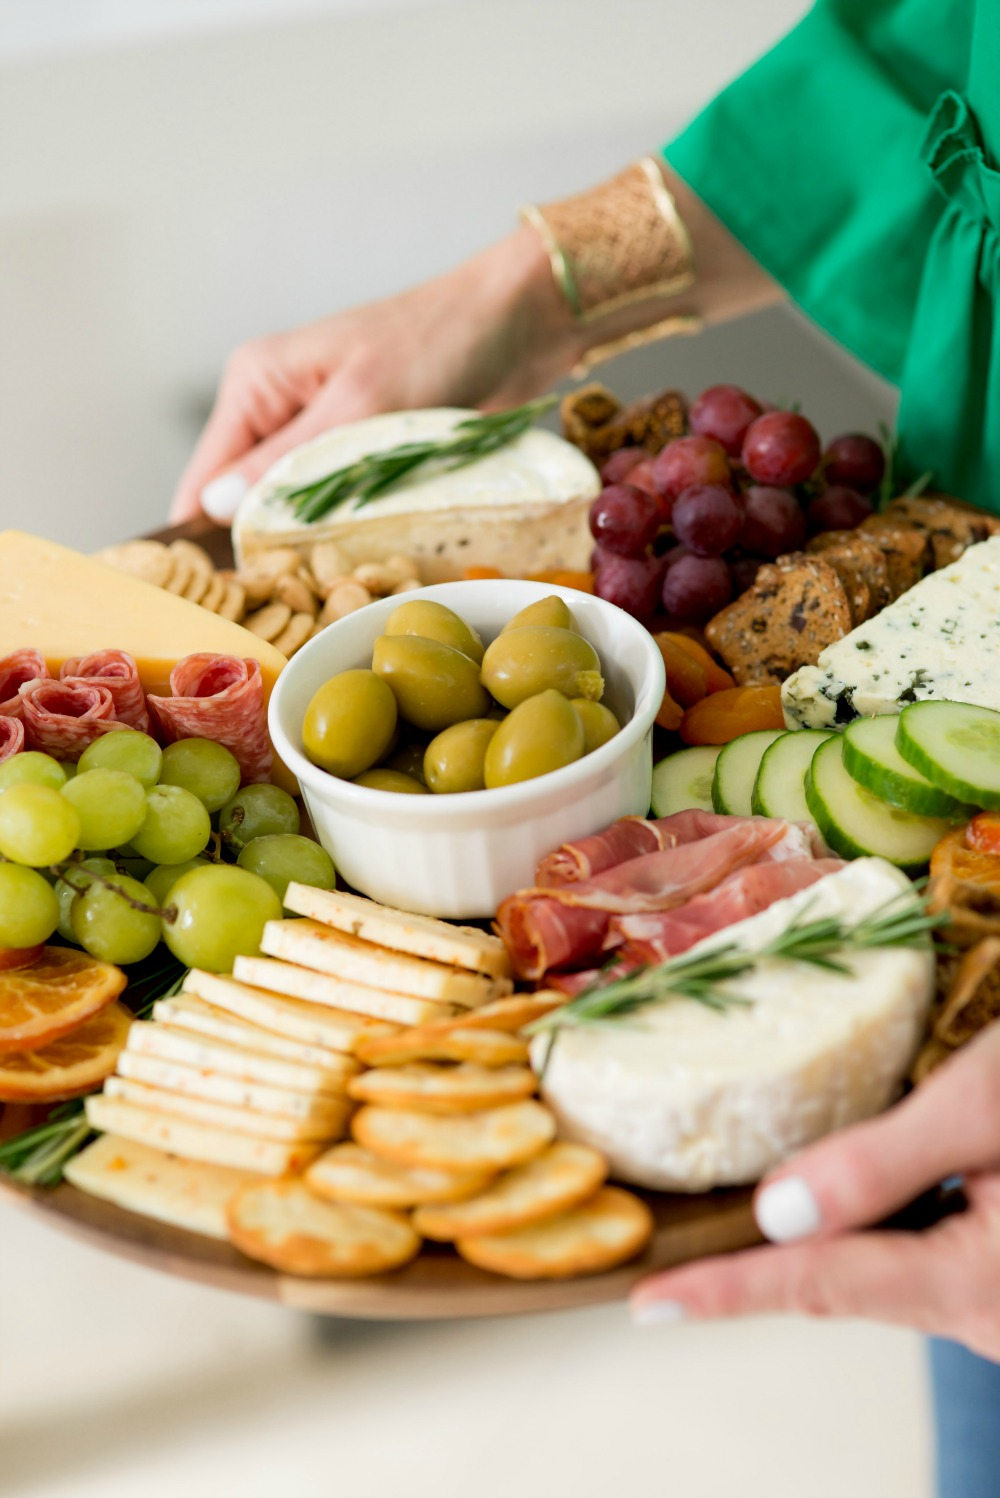 The Best Cheese Board Ideas for your Next Dinner Party featured by popular Florida life and style blogger The Modern Savvy